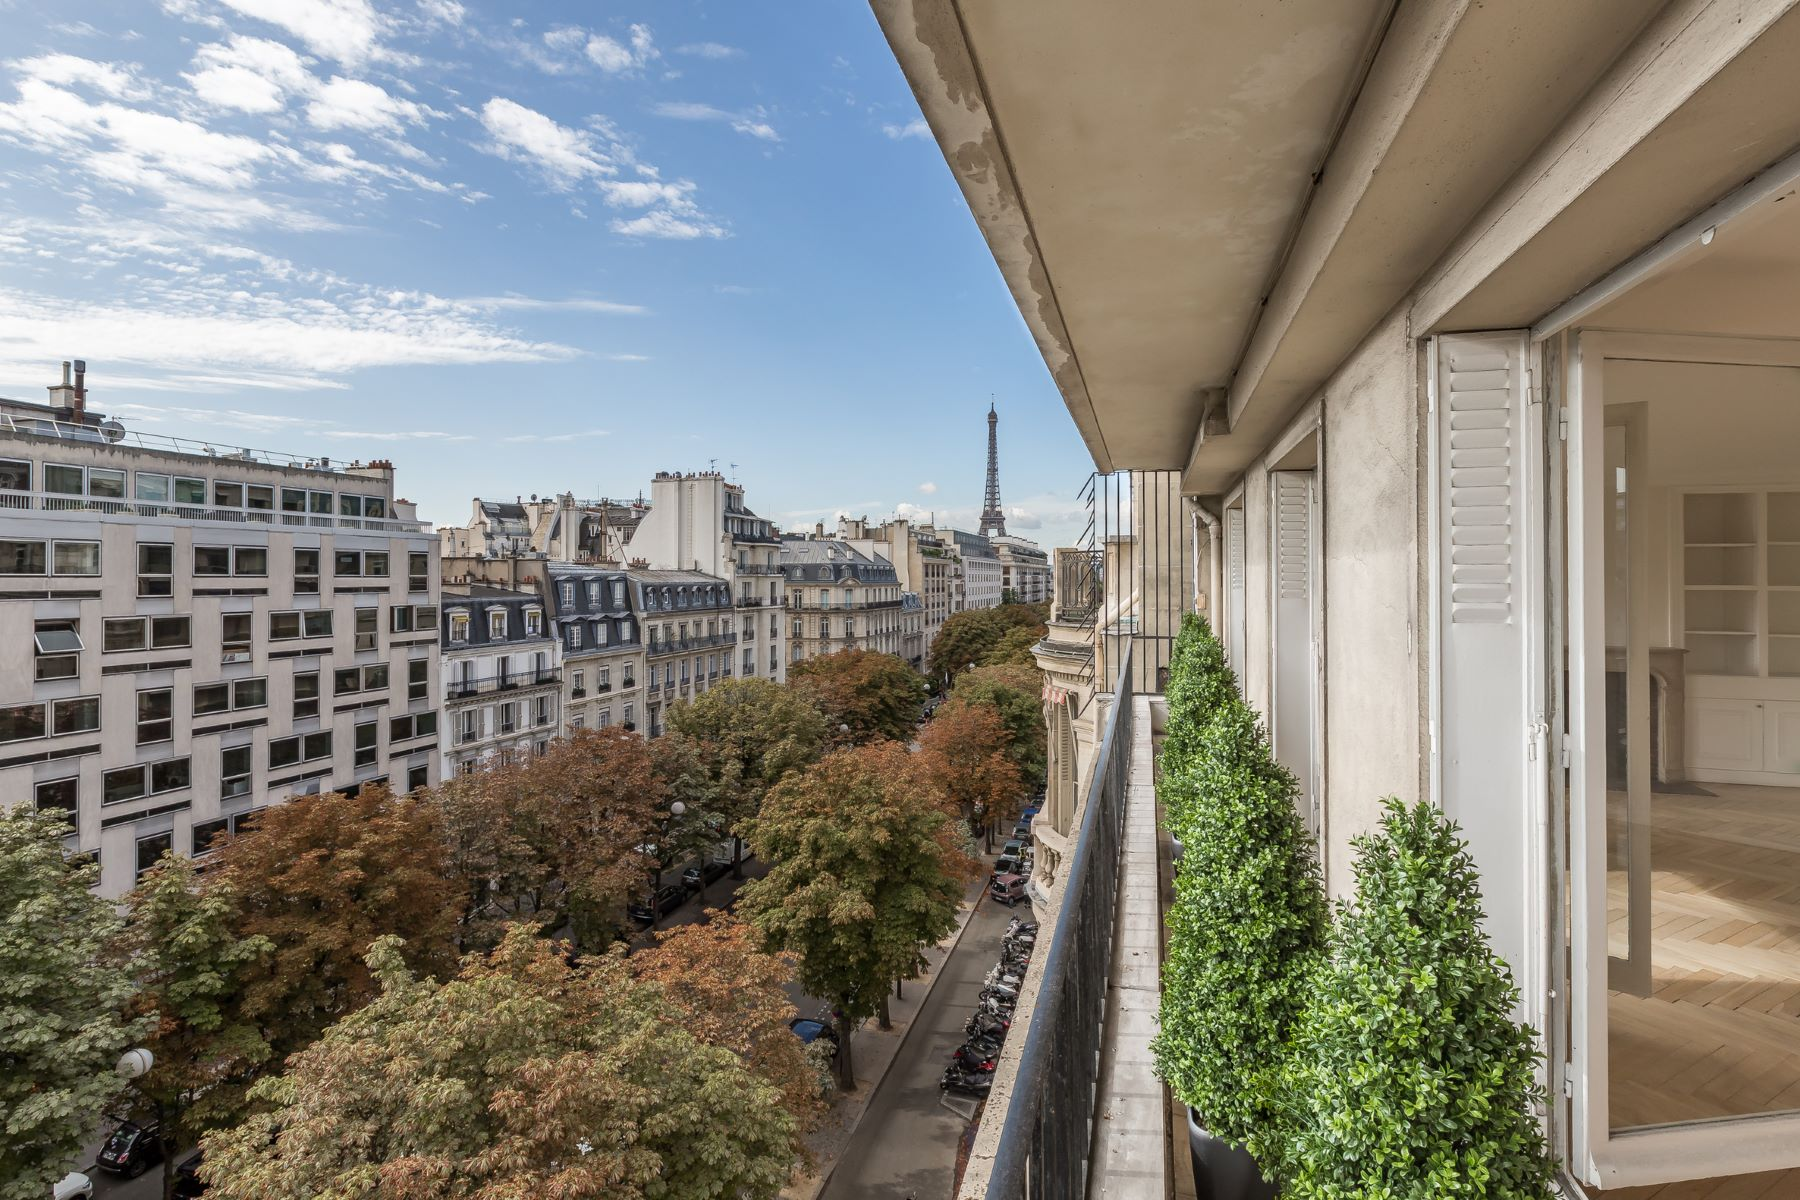 Maison unifamiliale pour l Vente à Avenue Montaigne / Triangle d'or Paris, Paris, 75008 France